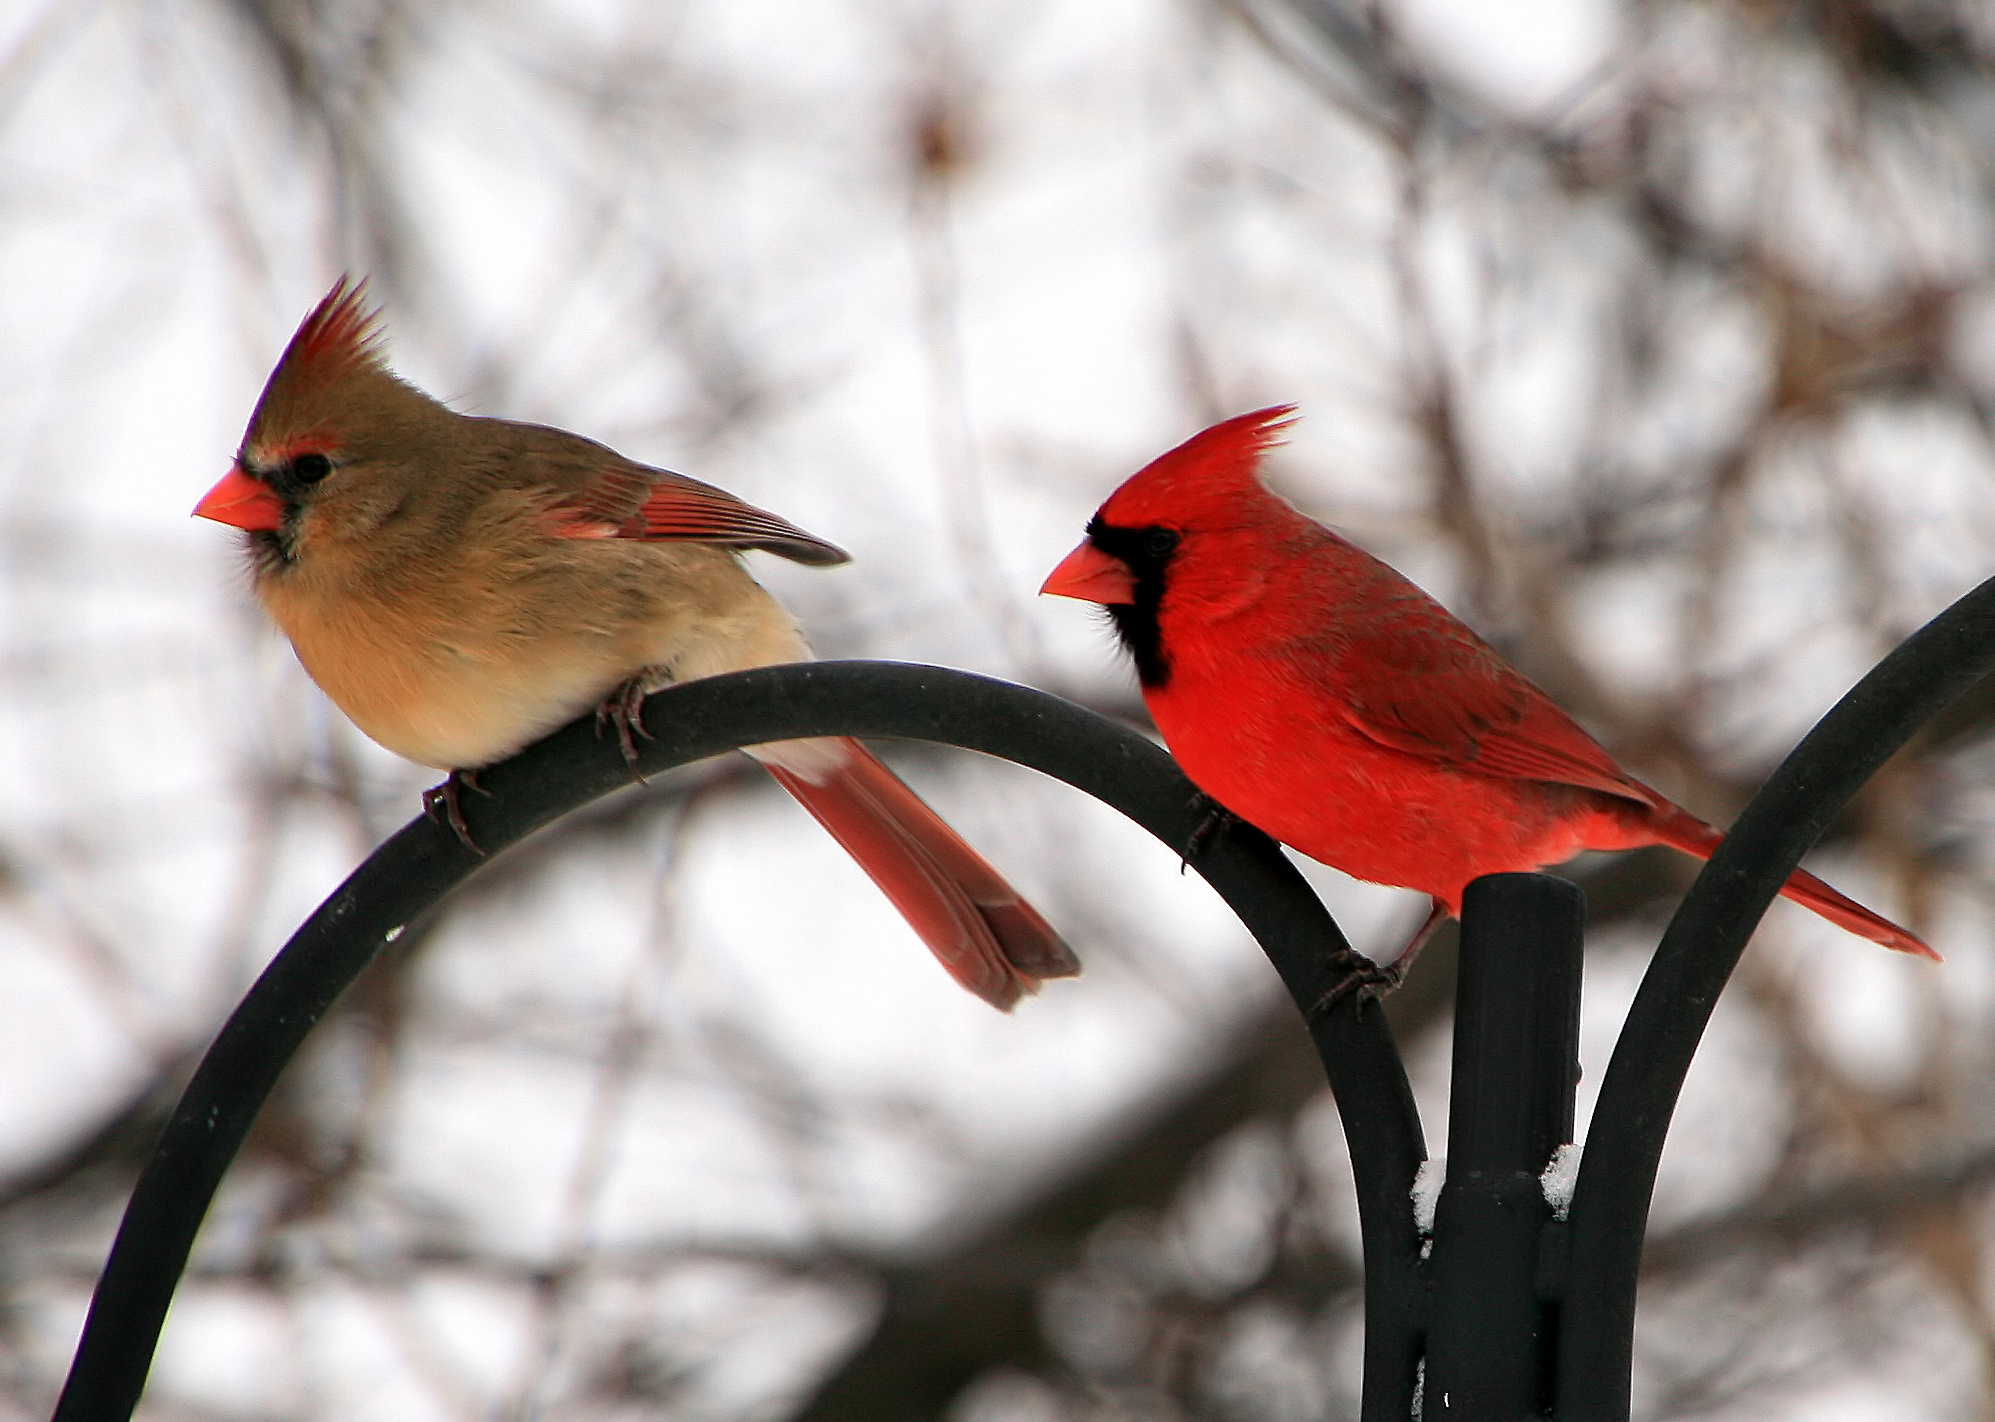 Fall Bird Feeder Wallpaper Research News Gender Gap At Our Feeders Feederwatch